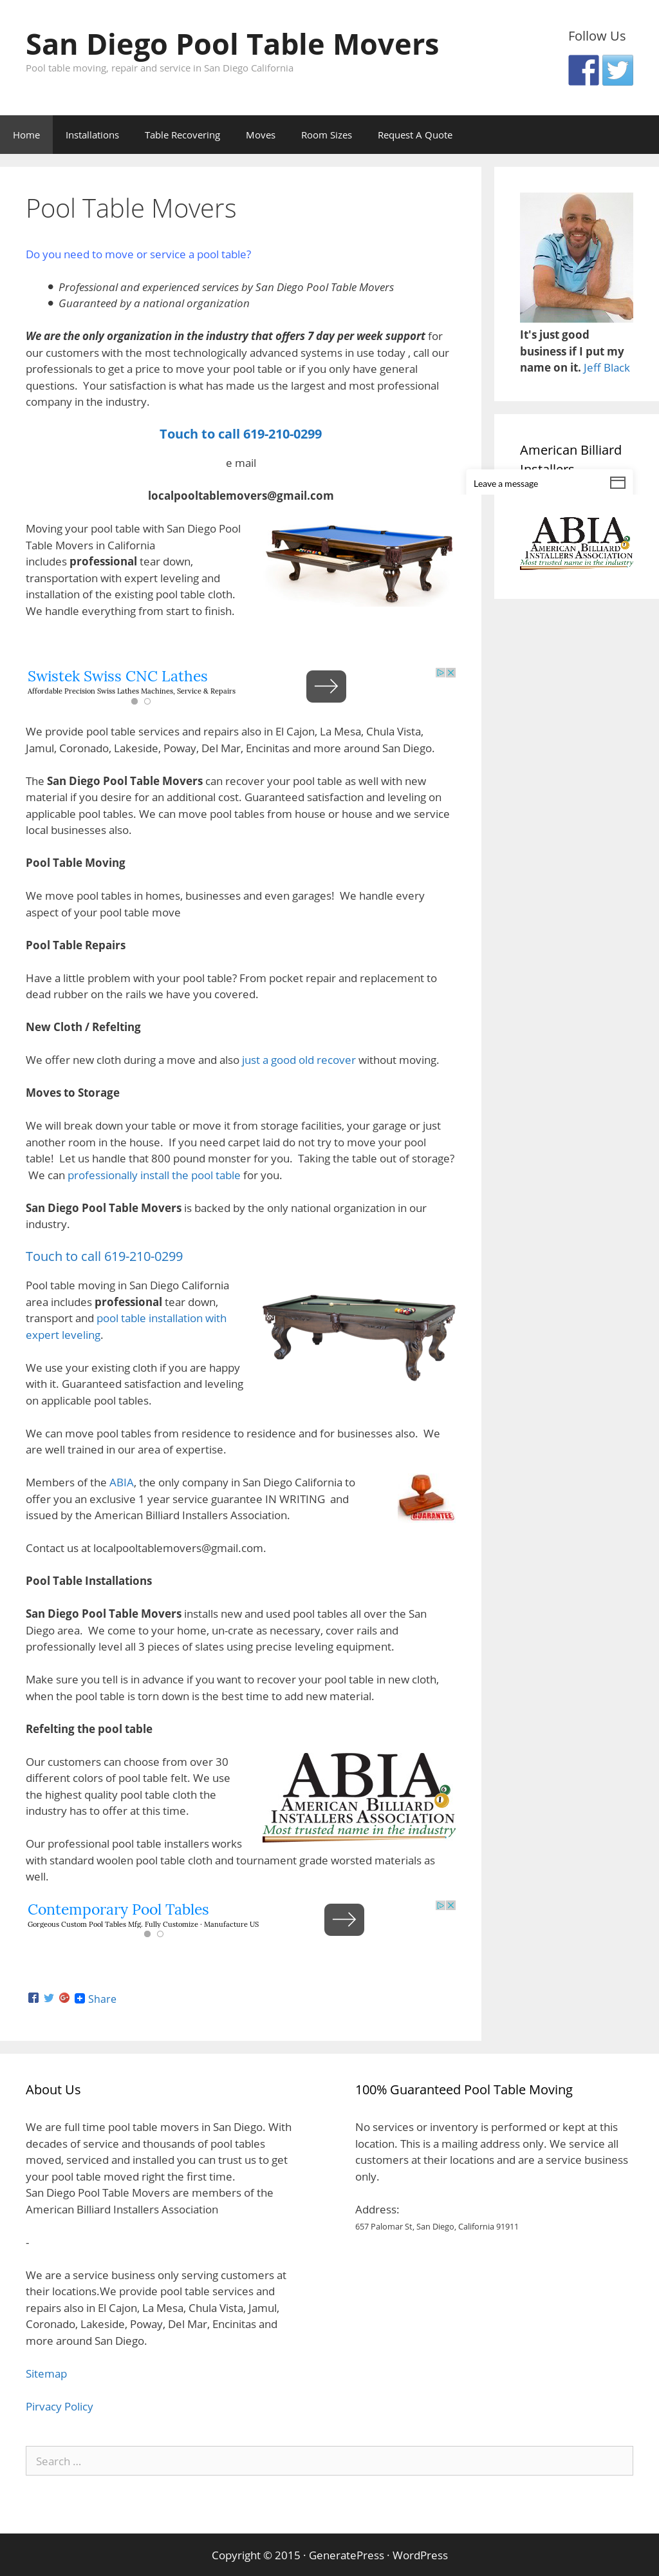 San Diego Pool Table Movers Competitors Revenue And Employees - Pool table movers san diego